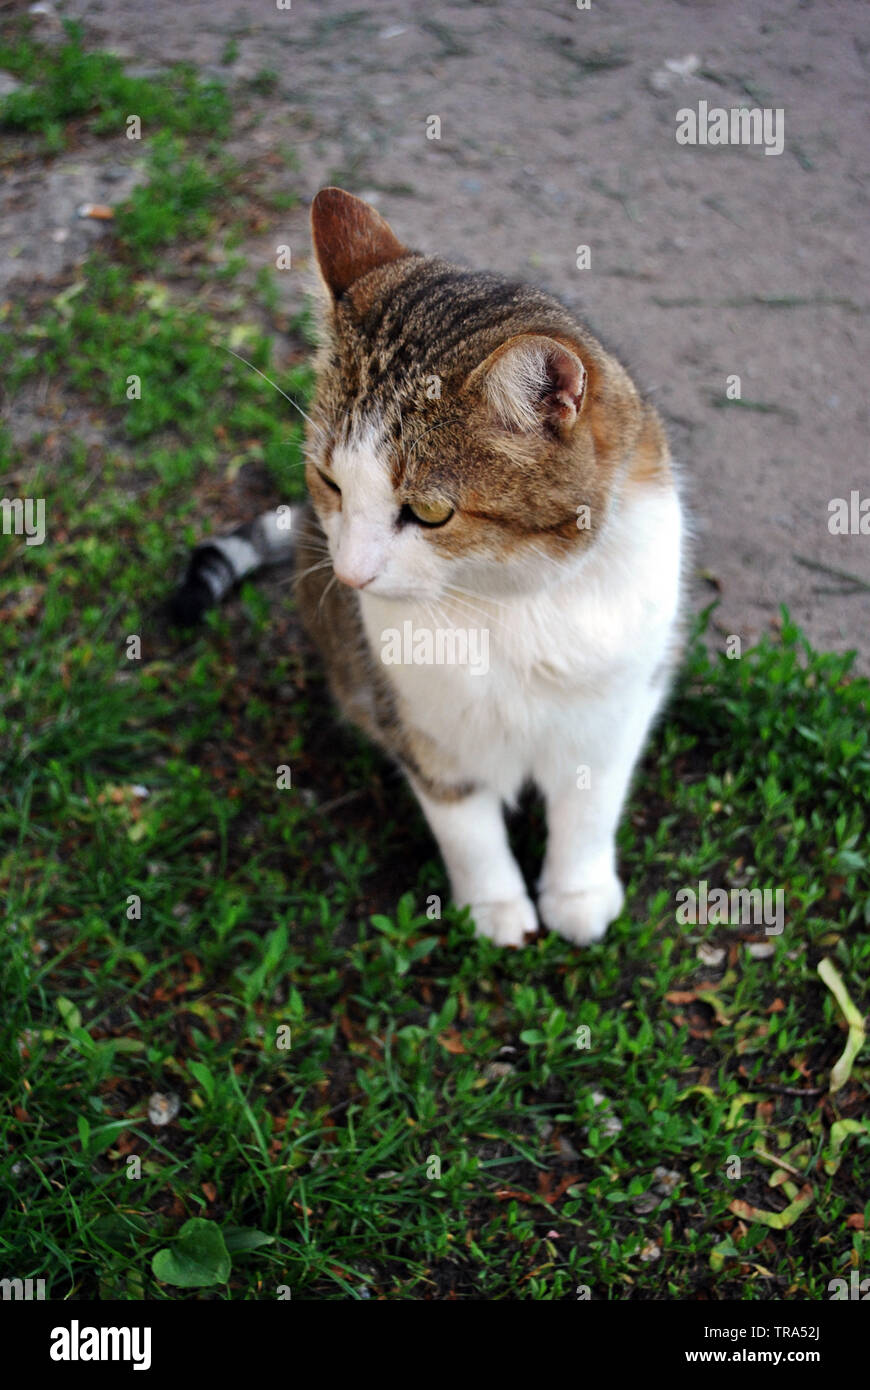 White And Brown Spotted Cyprus Cat Breed Sitting On Grass Top View Stock Photo Alamy